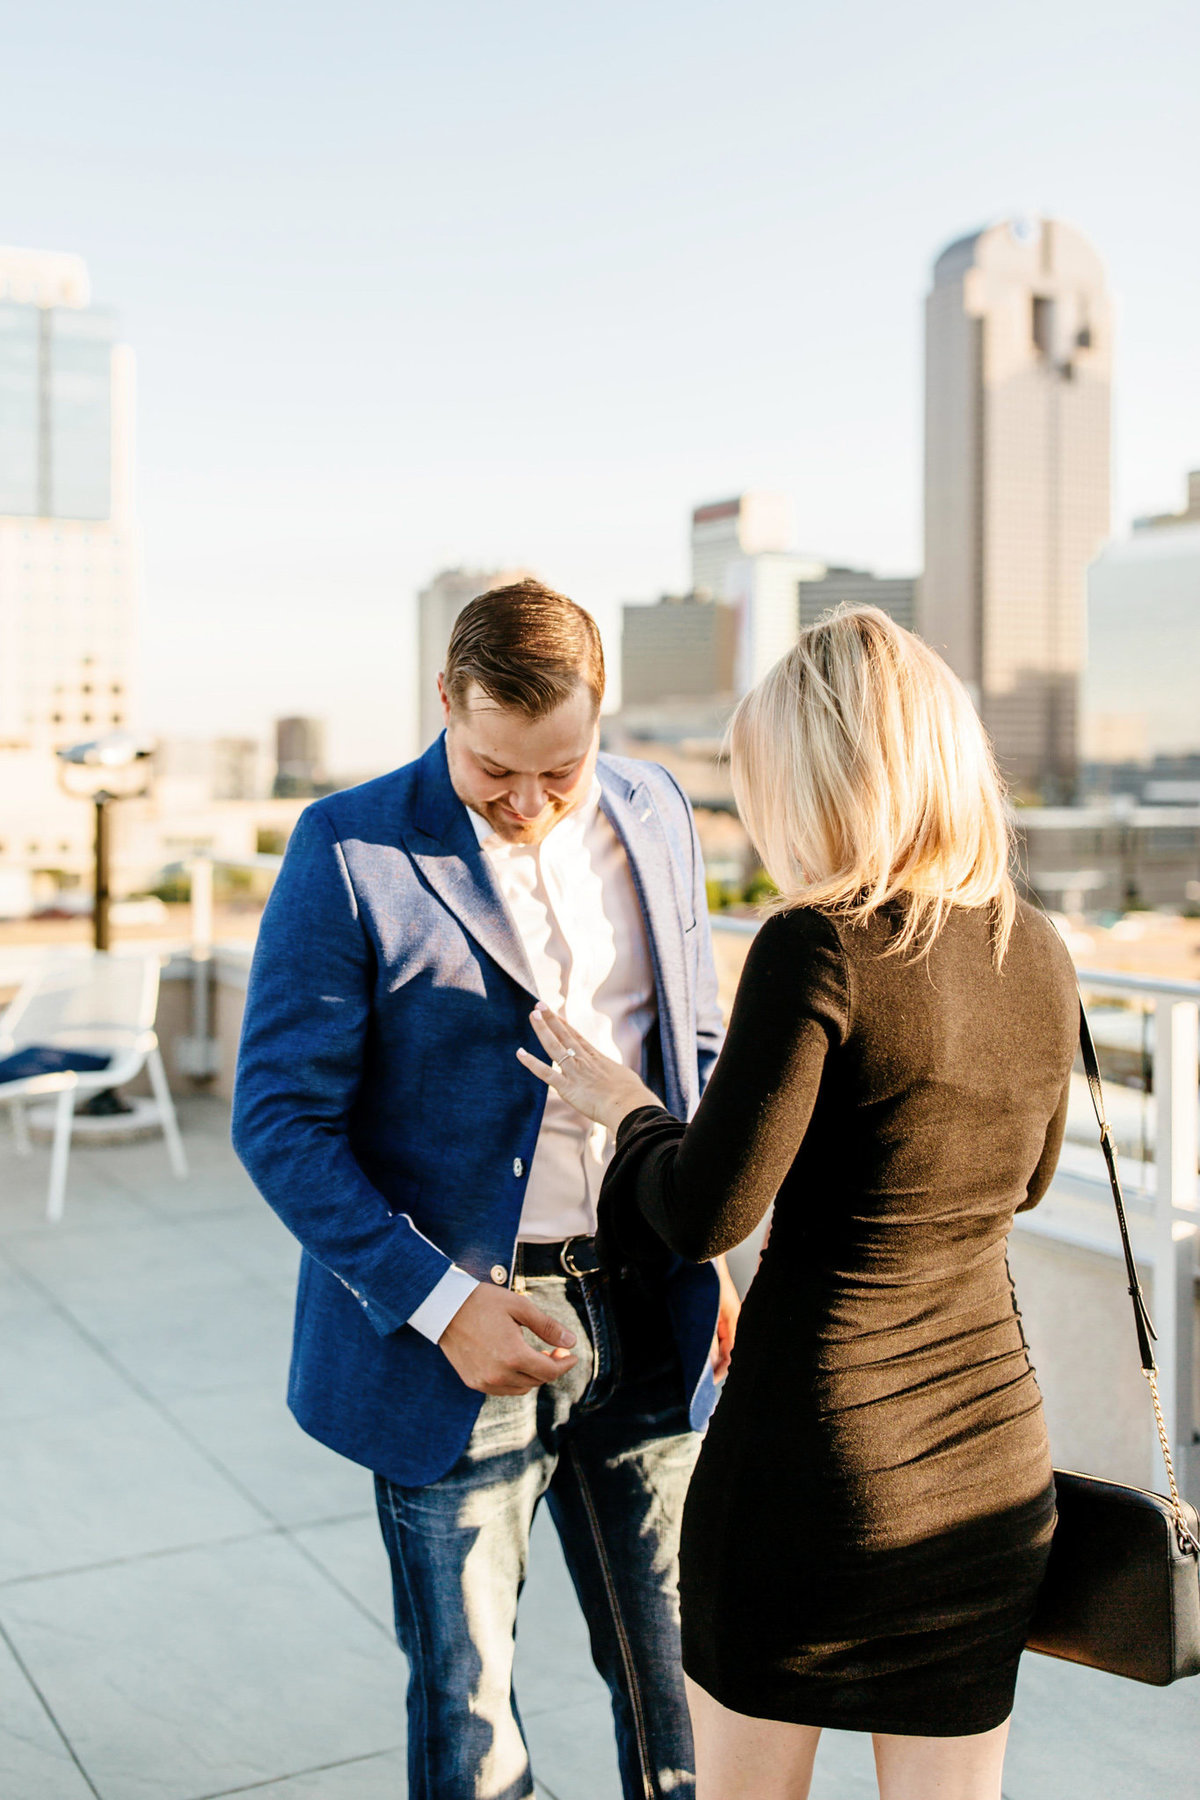 Eric & Megan - Downtown Dallas Rooftop Proposal & Engagement Session-50